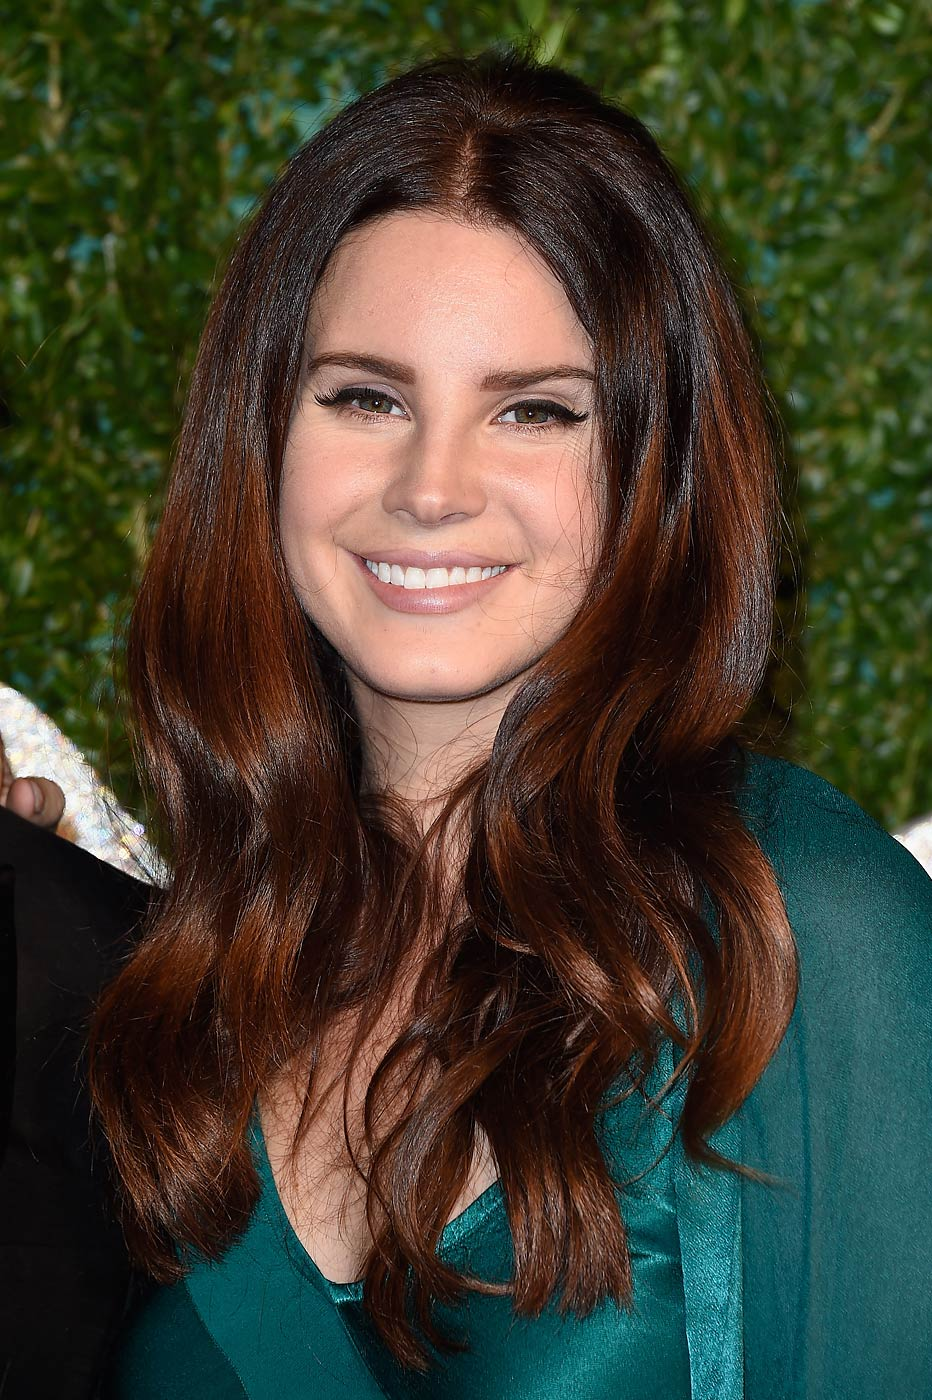 Lana del Rey attends the British Fashion Awards at London Coliseum on December 1, 2014 in London, England.